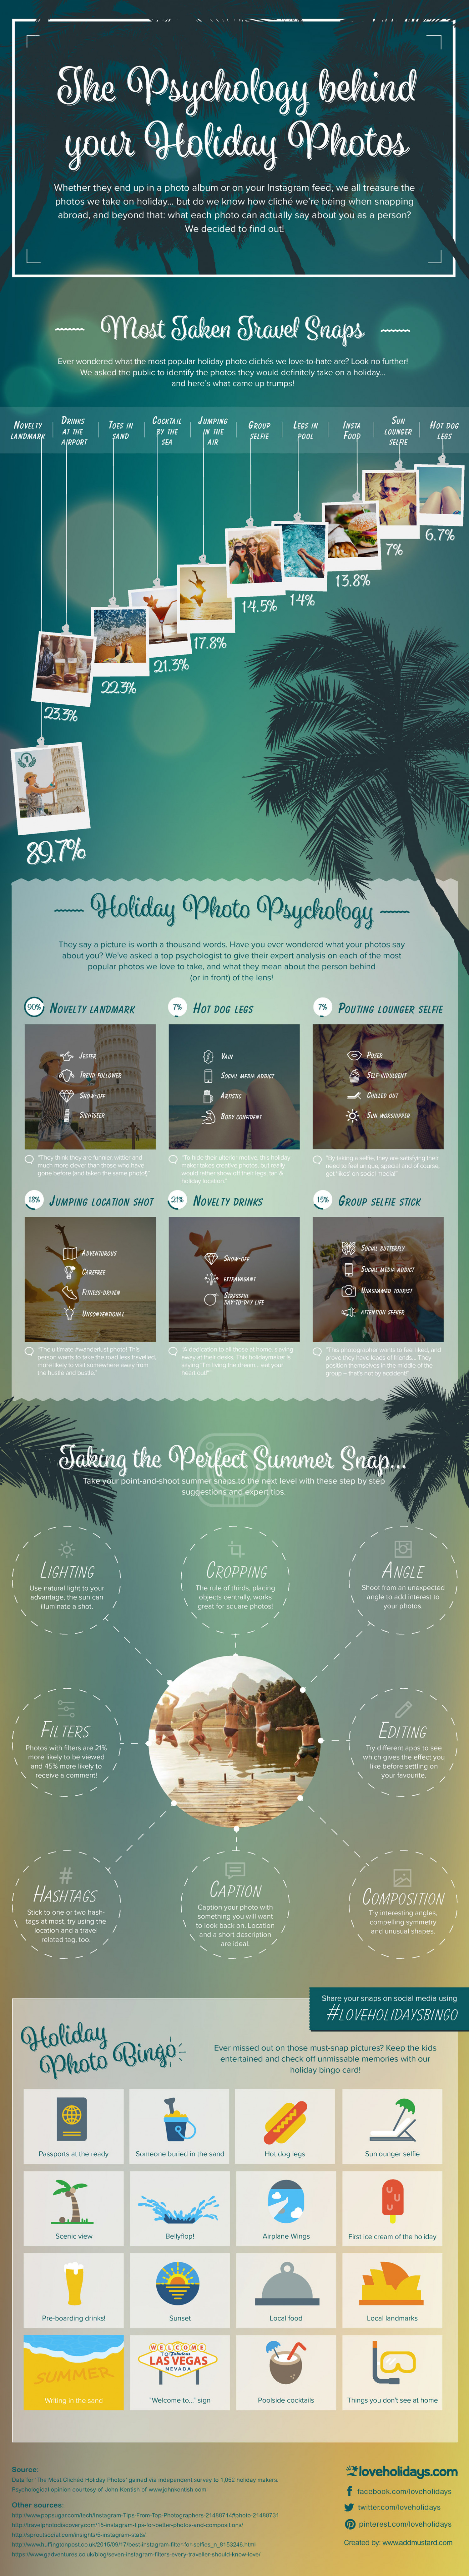 What do your holiday snaps say about you? Infographic